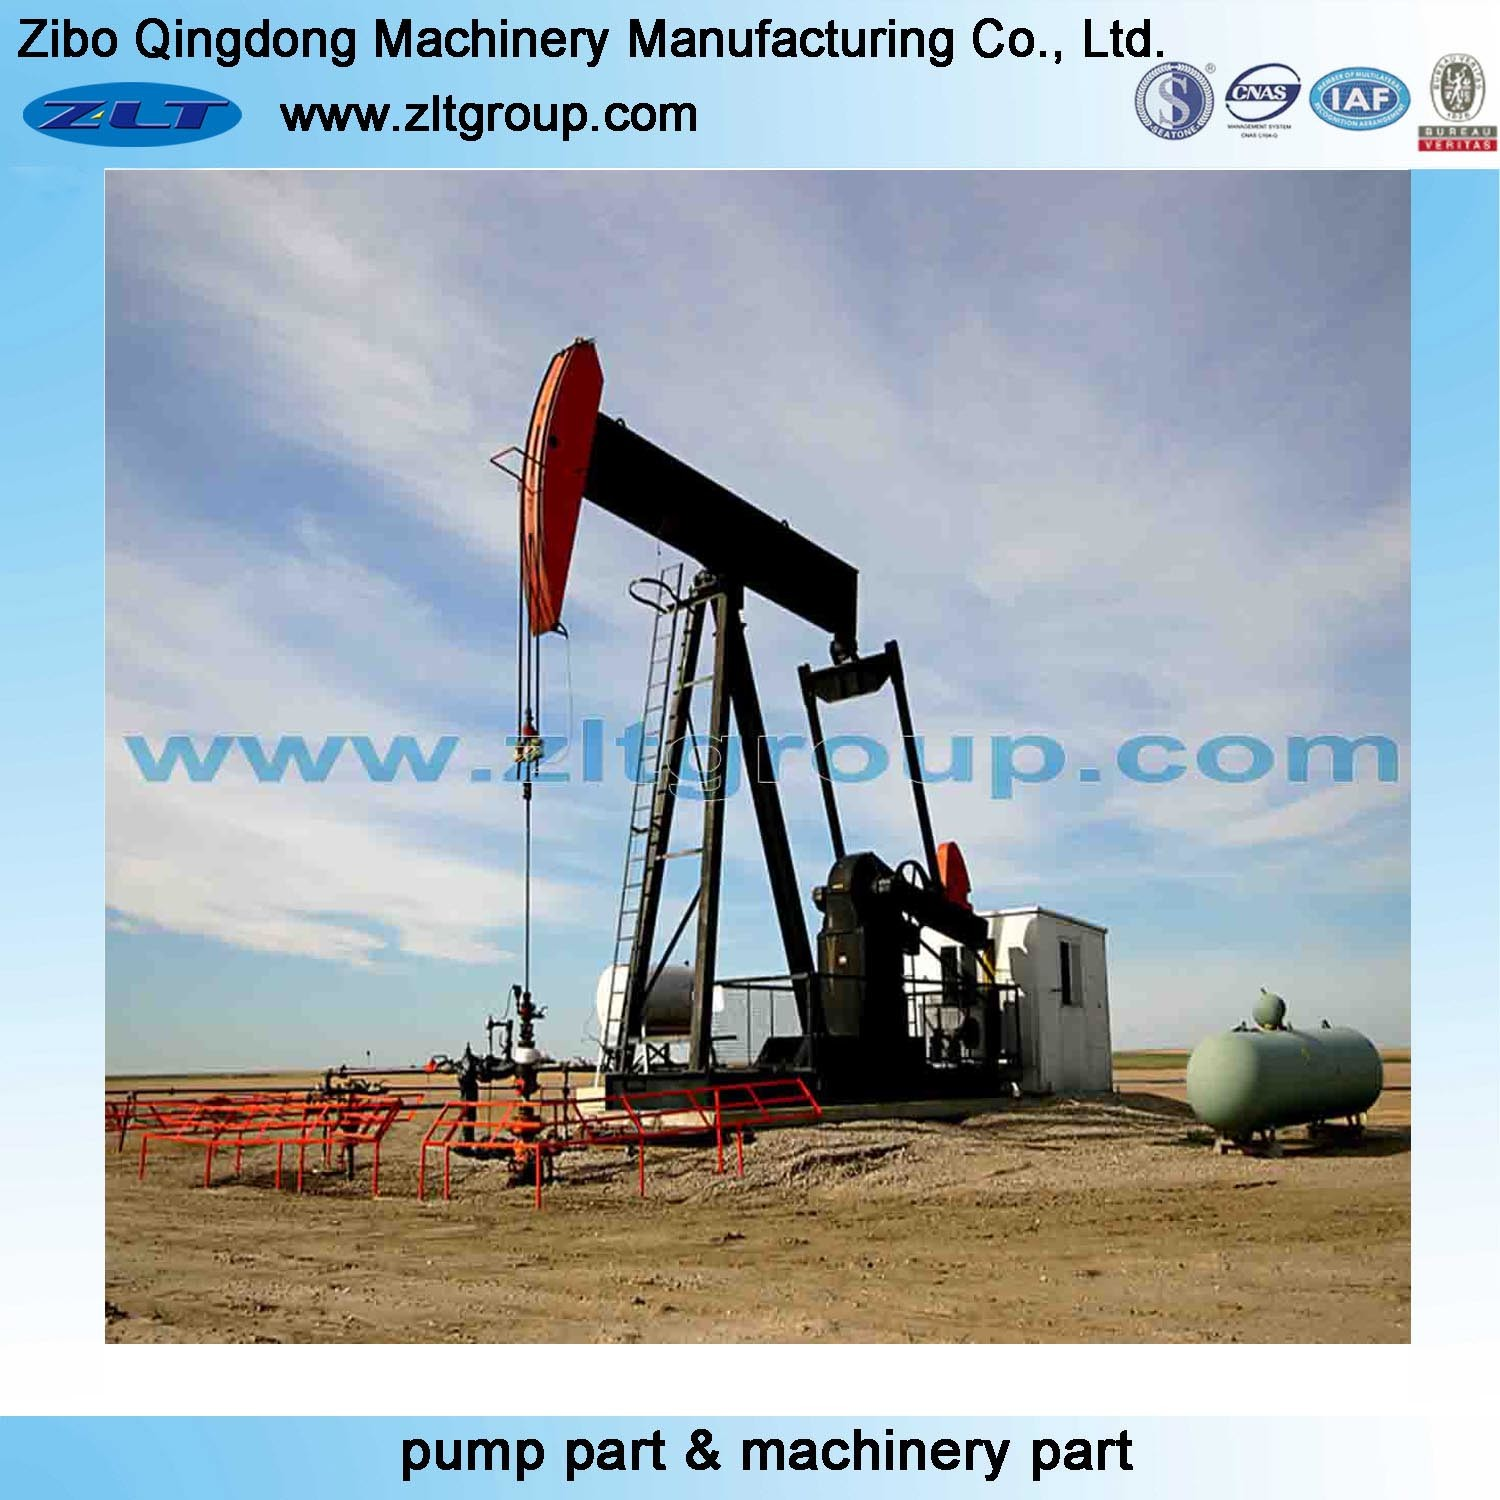 Counter Weight Iron Supplier for Oil & Gas Industry